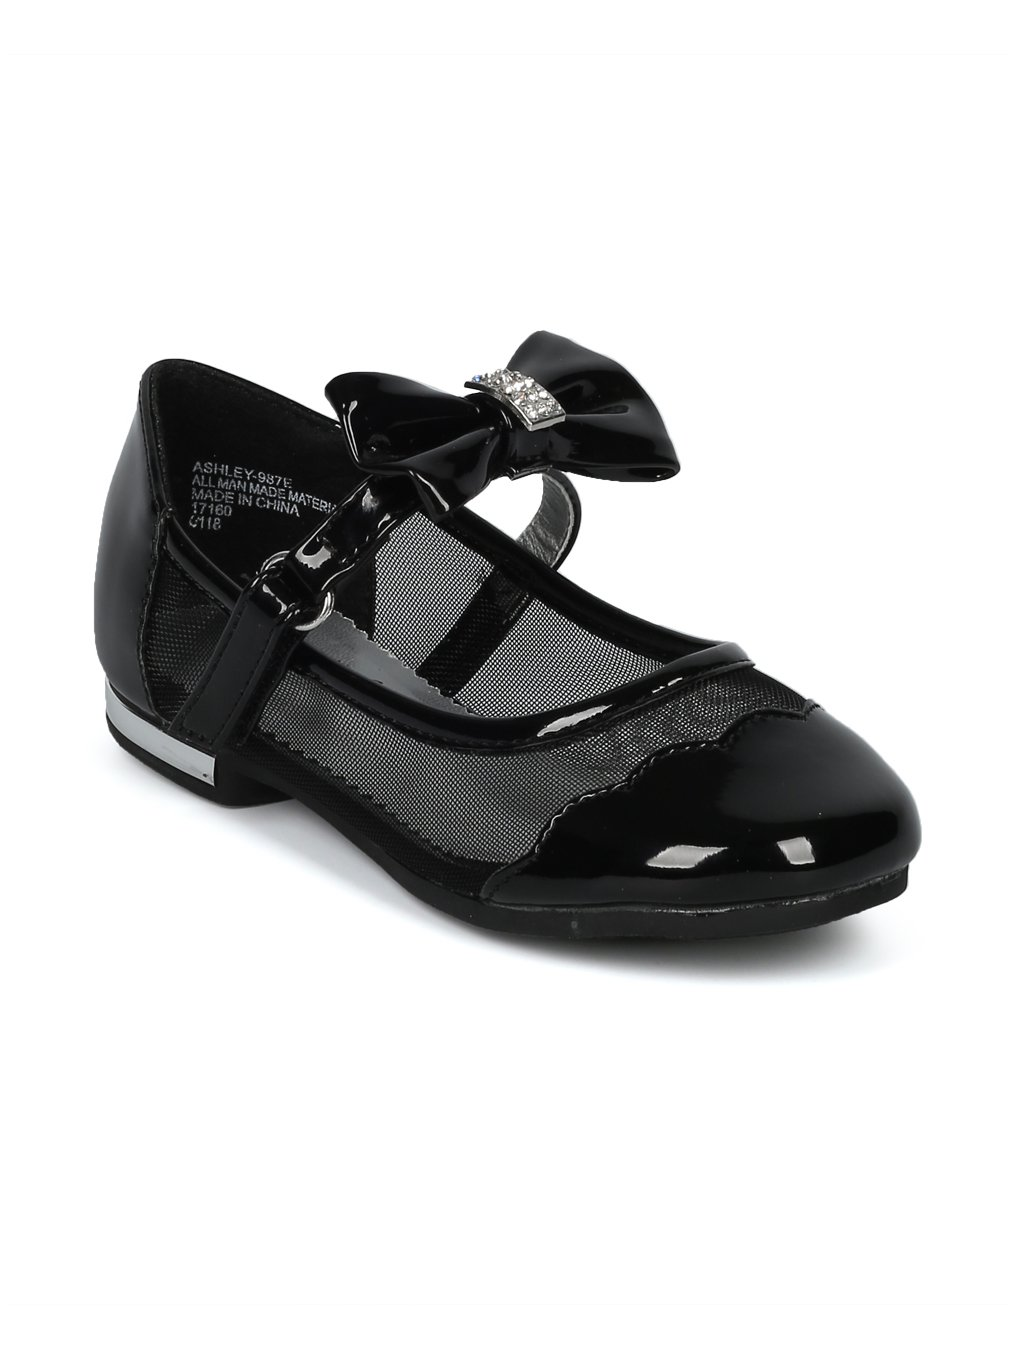 Alrisco Girls Mesh Panel Bow Tie Mary Jane Ballet Flat HH12 - Black Patent (Size: Toddler 6)